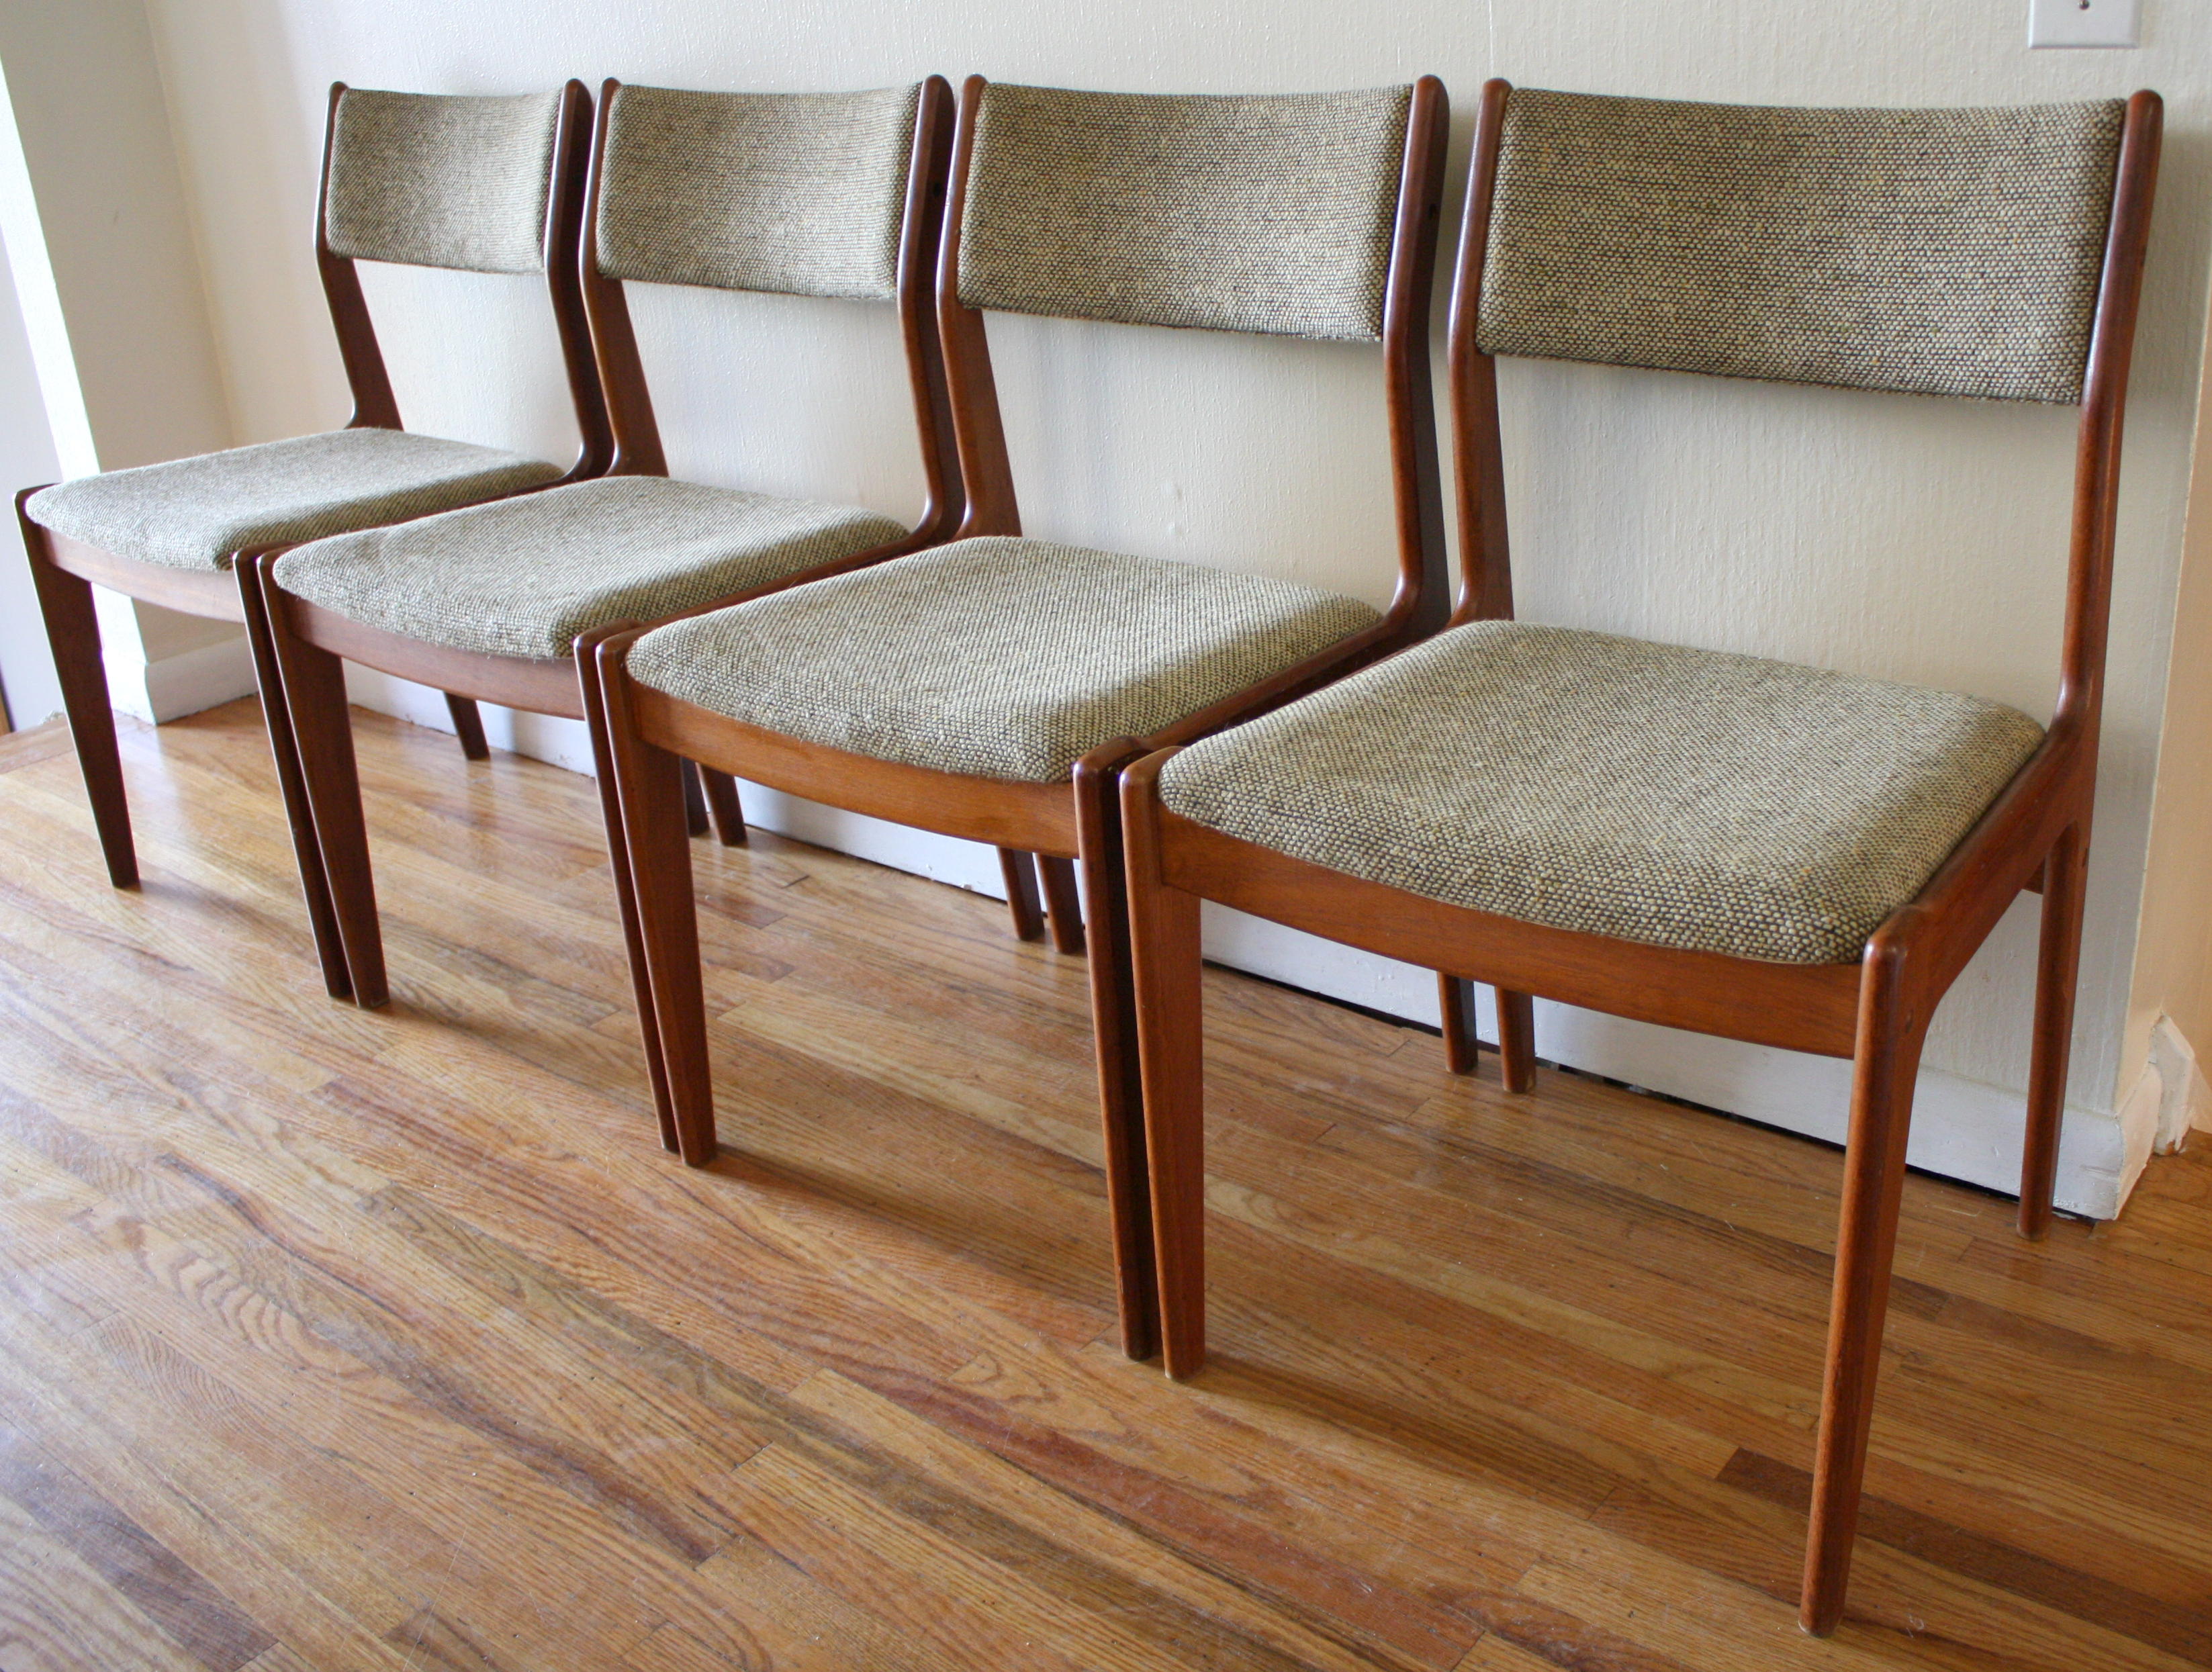 Set of 4 Mid Century Modern Danish Dining Chairs